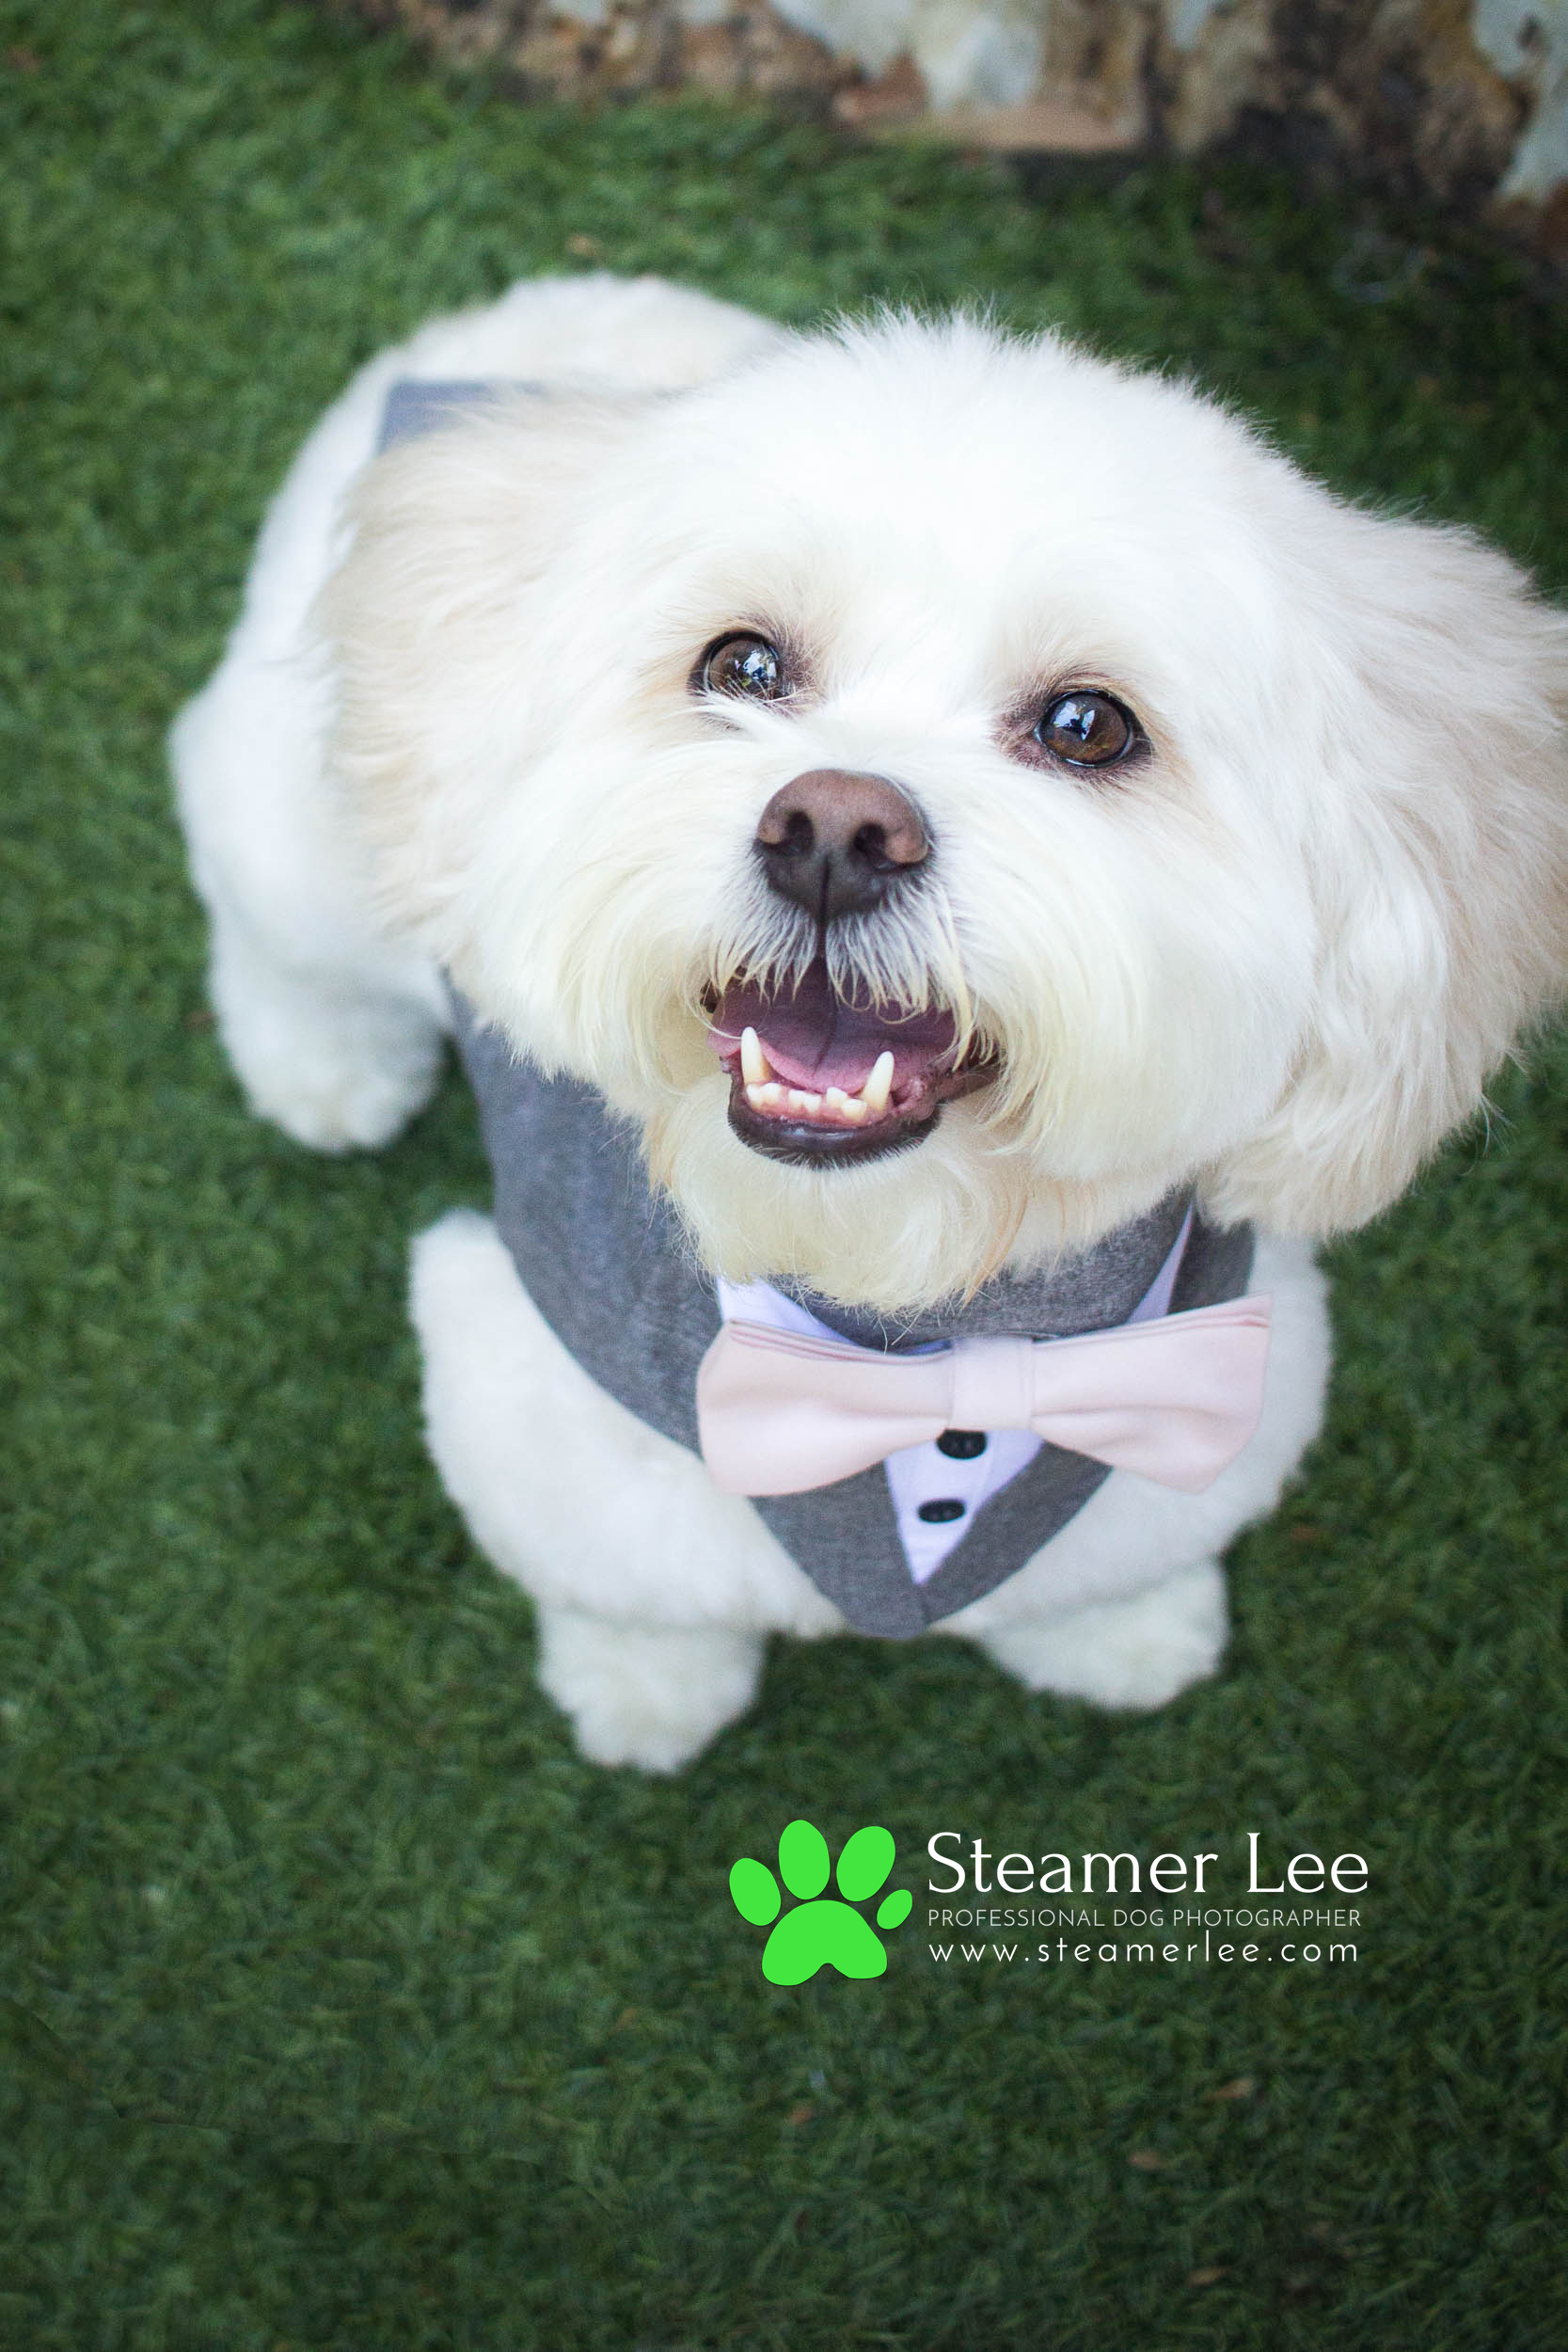 Steamer Lee - Dog Photography - Shihpoo - Charly - 7.jpg